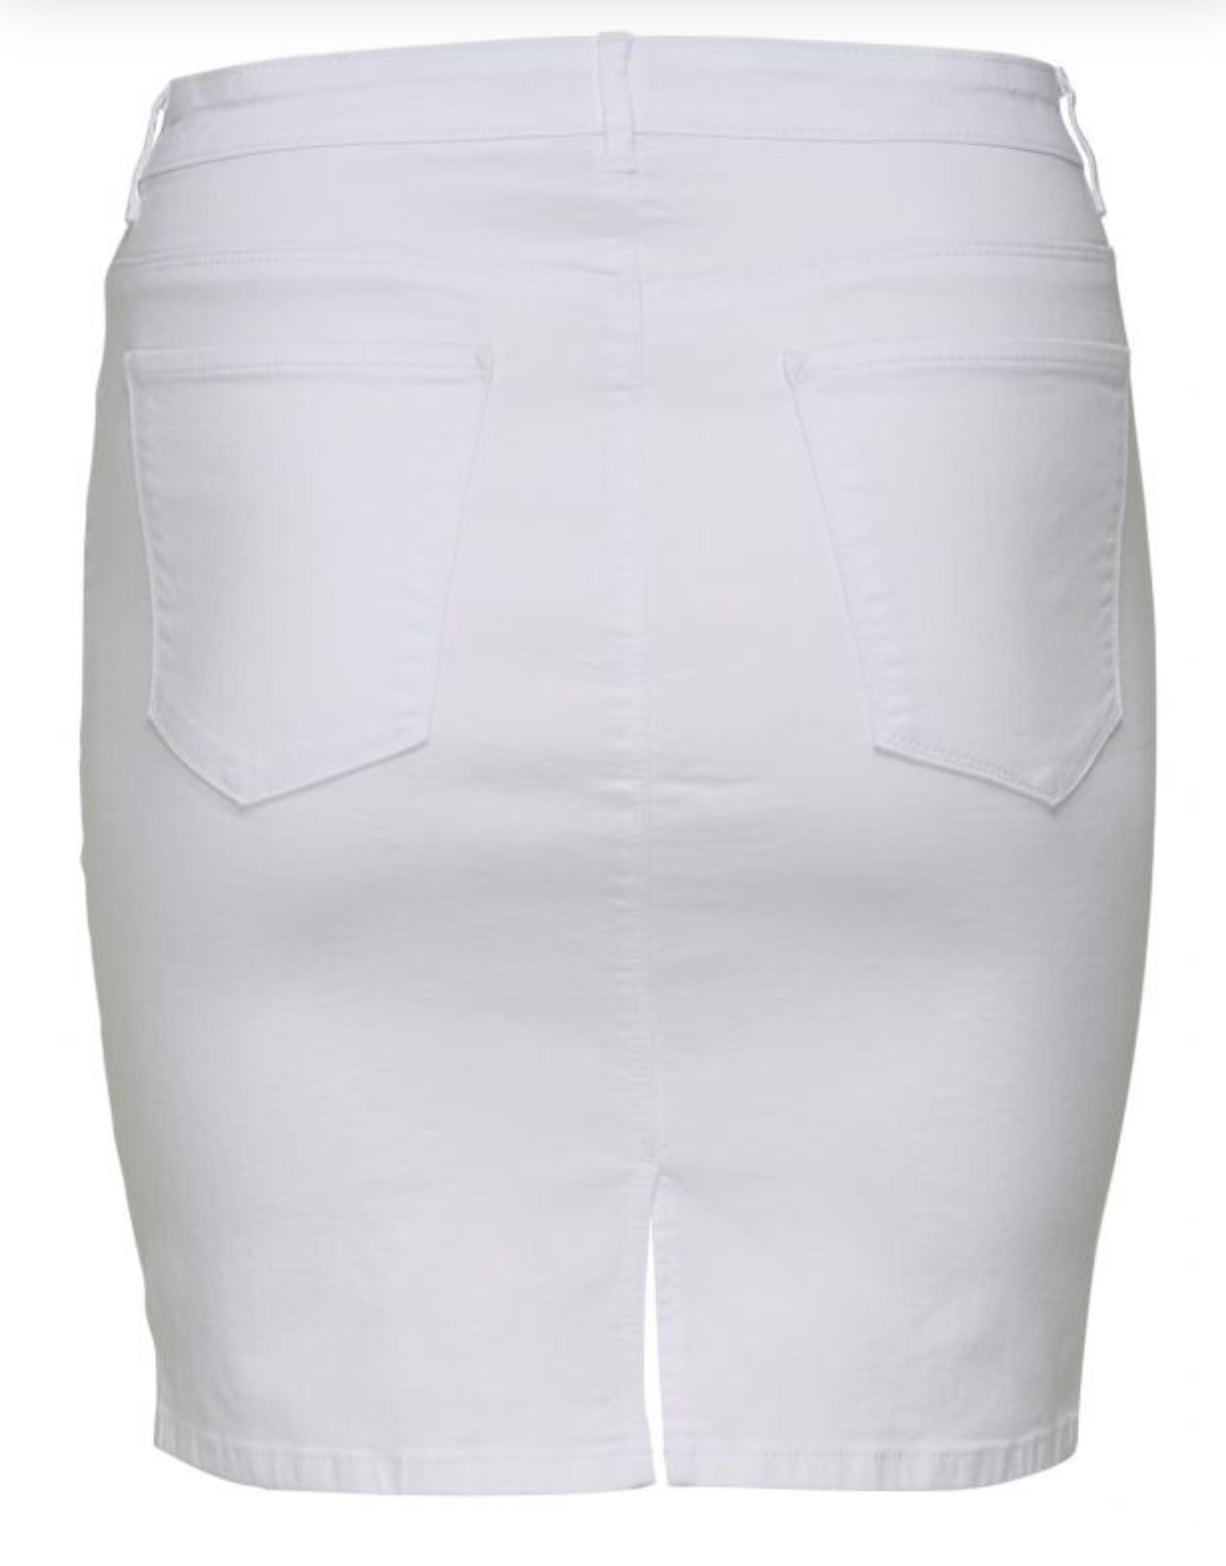 Thunder Pencil Skirt